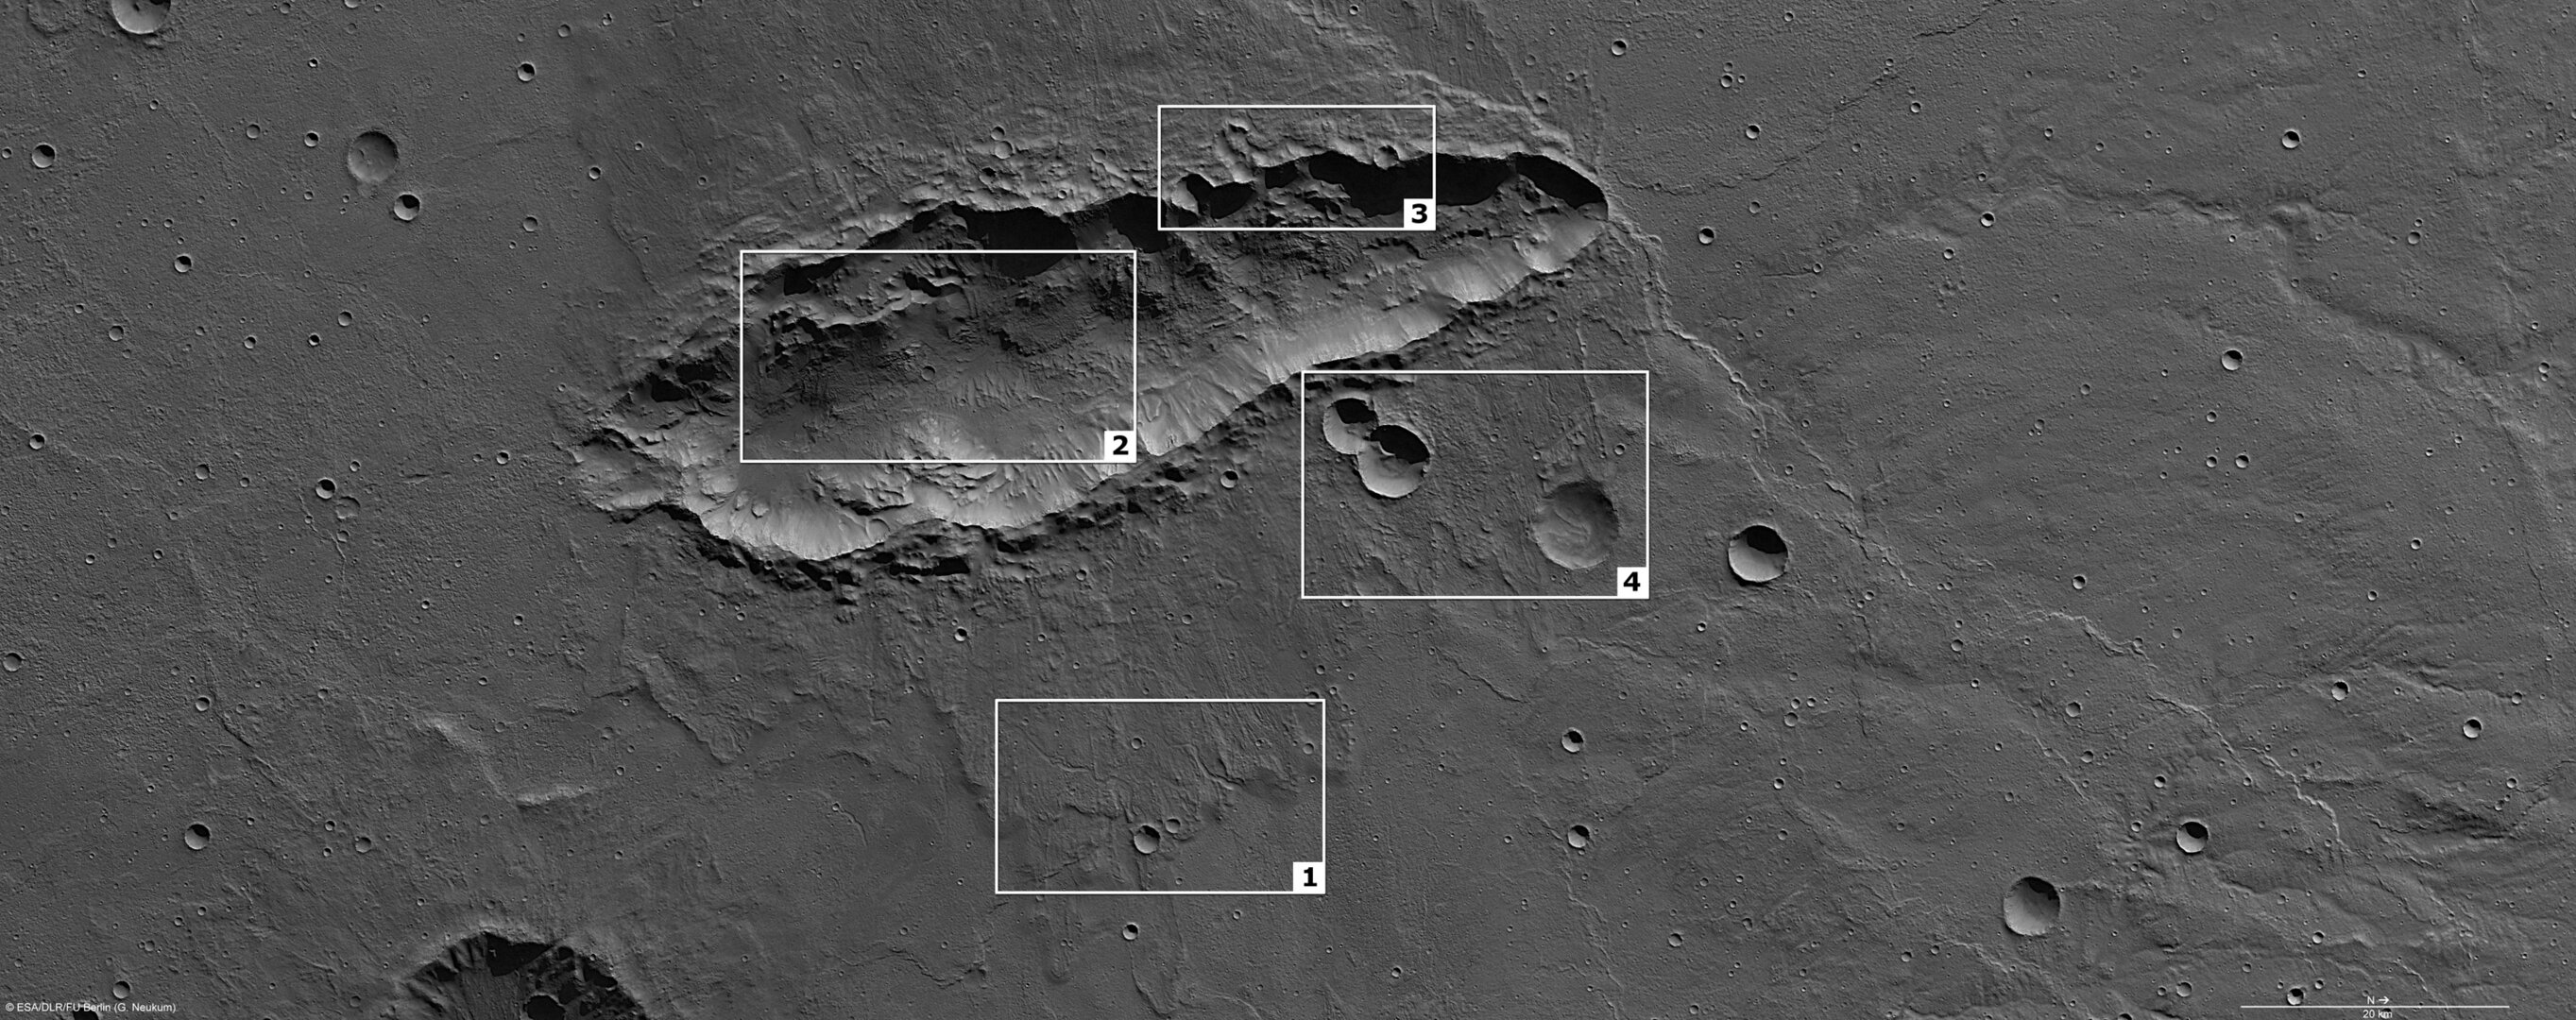 Features in the elongated crater